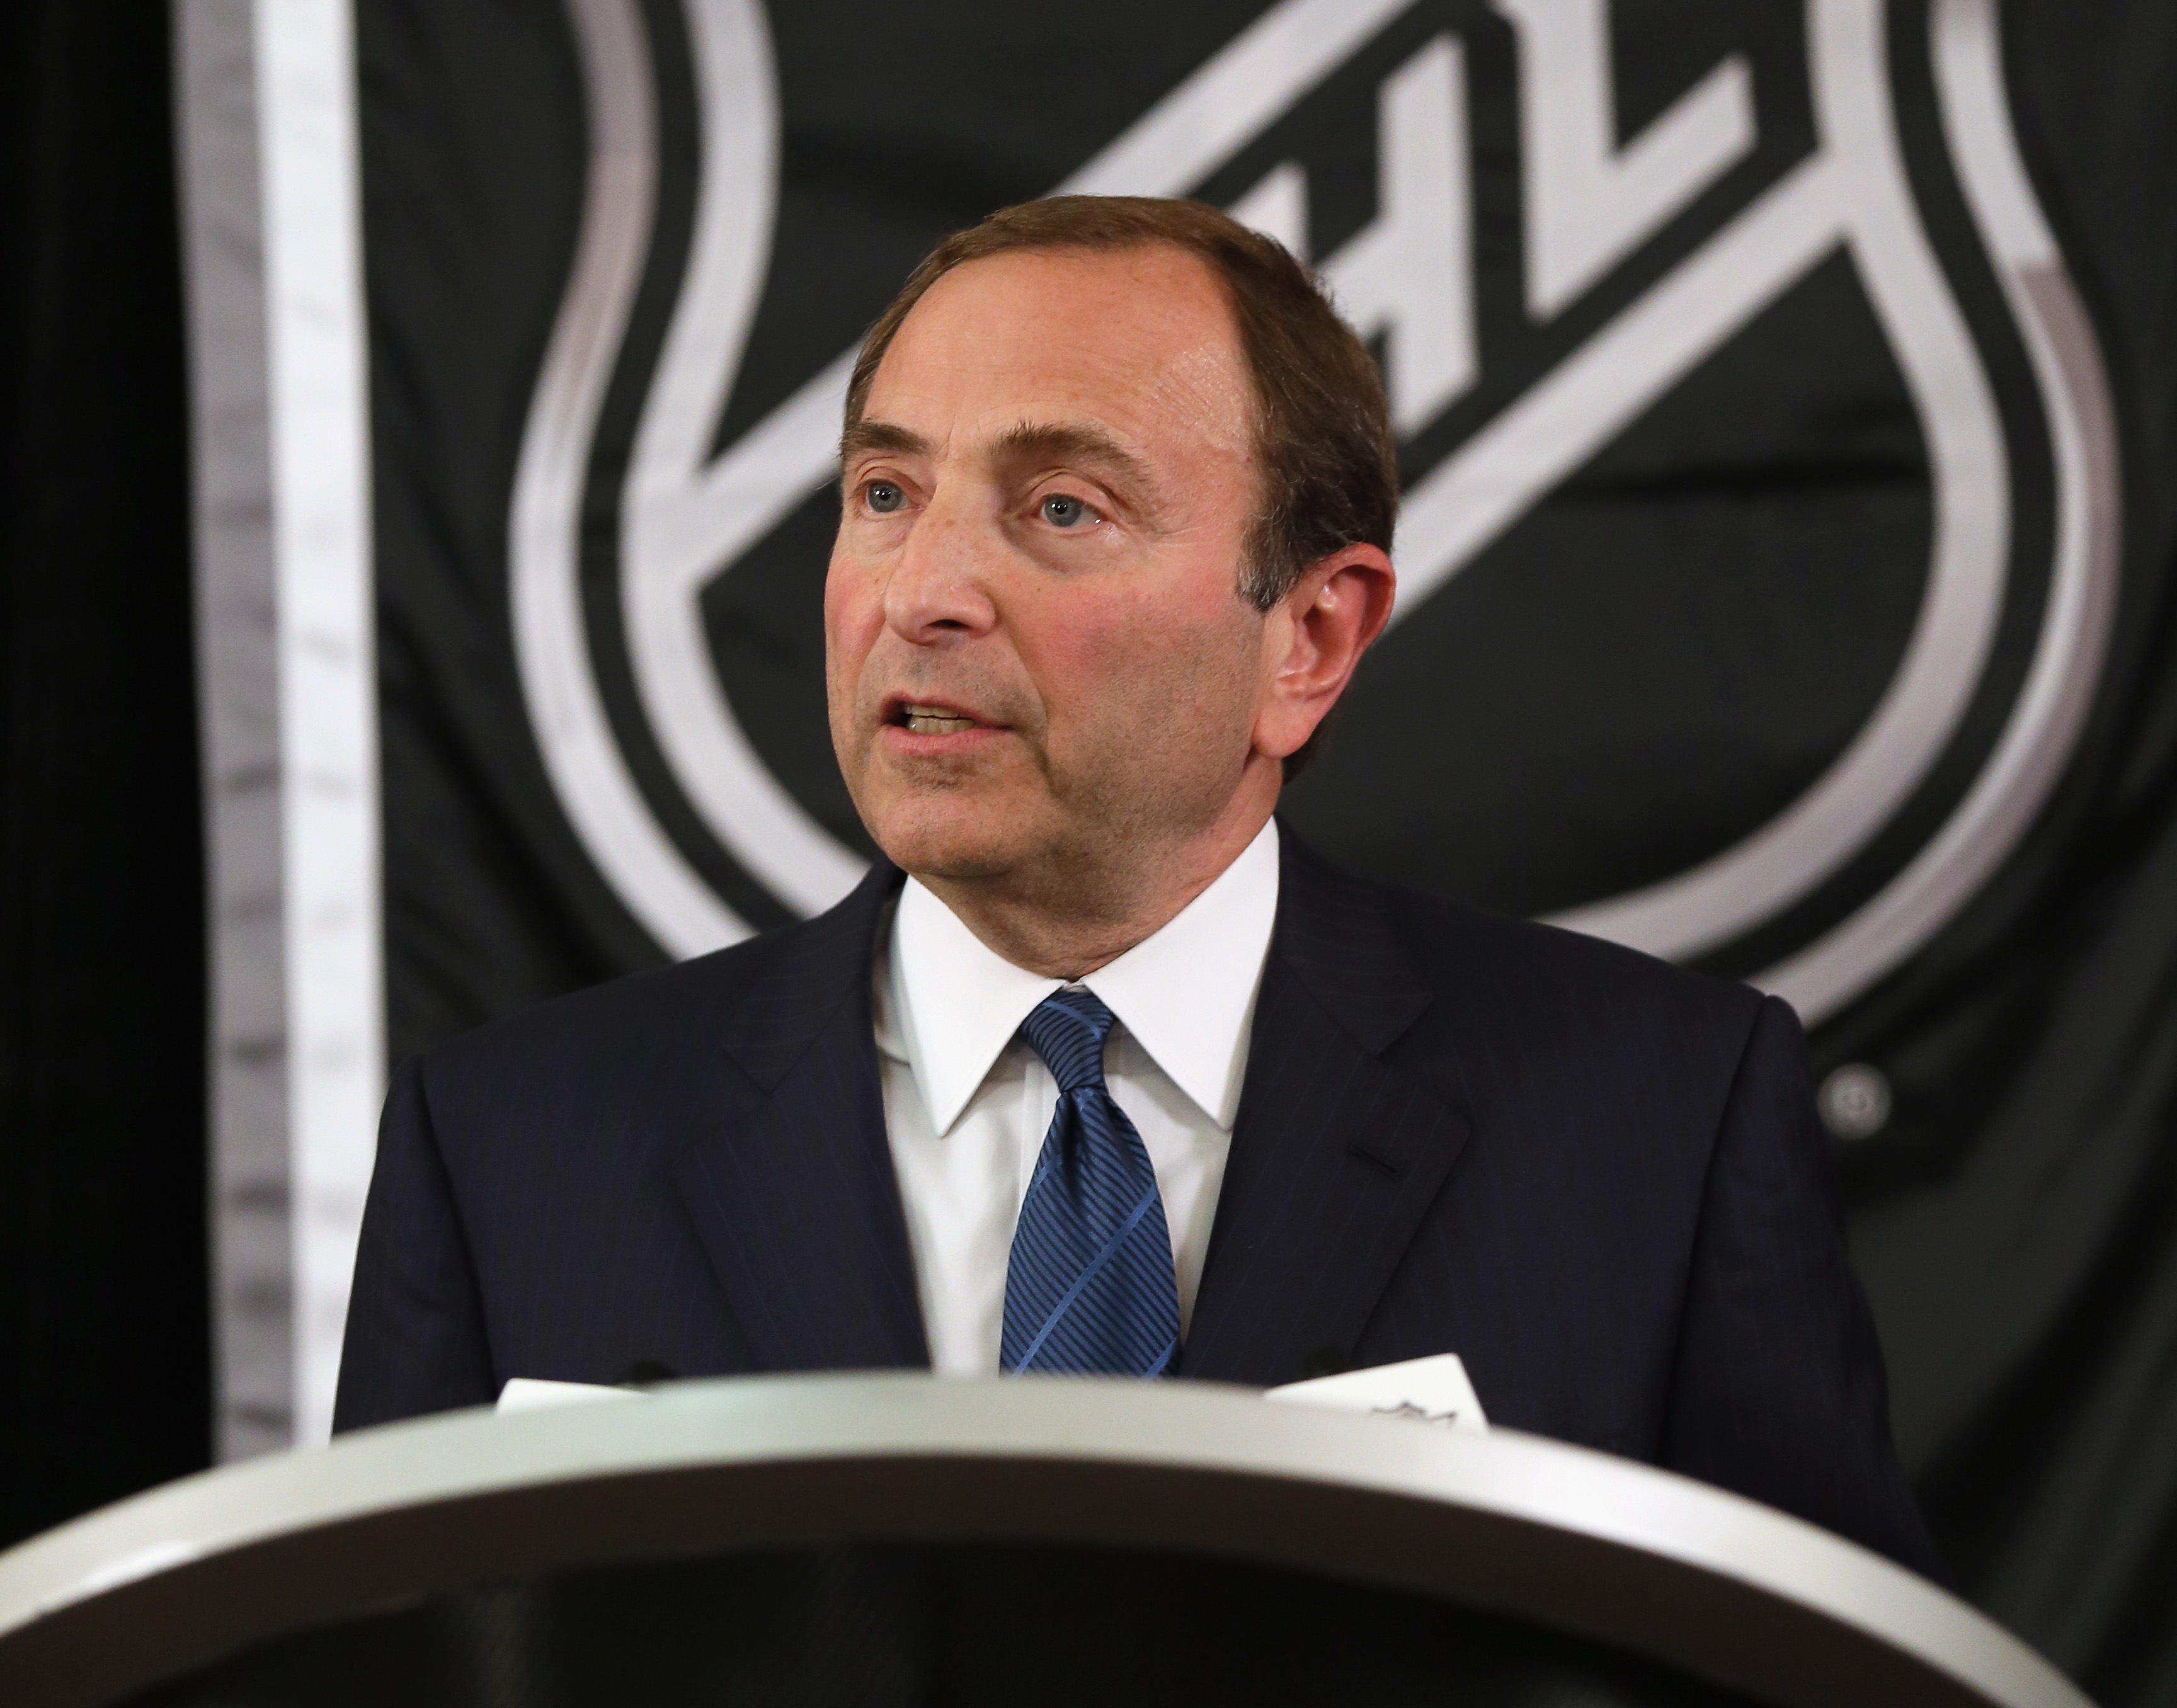 Gary Bettman addresses the media in New York City. (Getty Images)